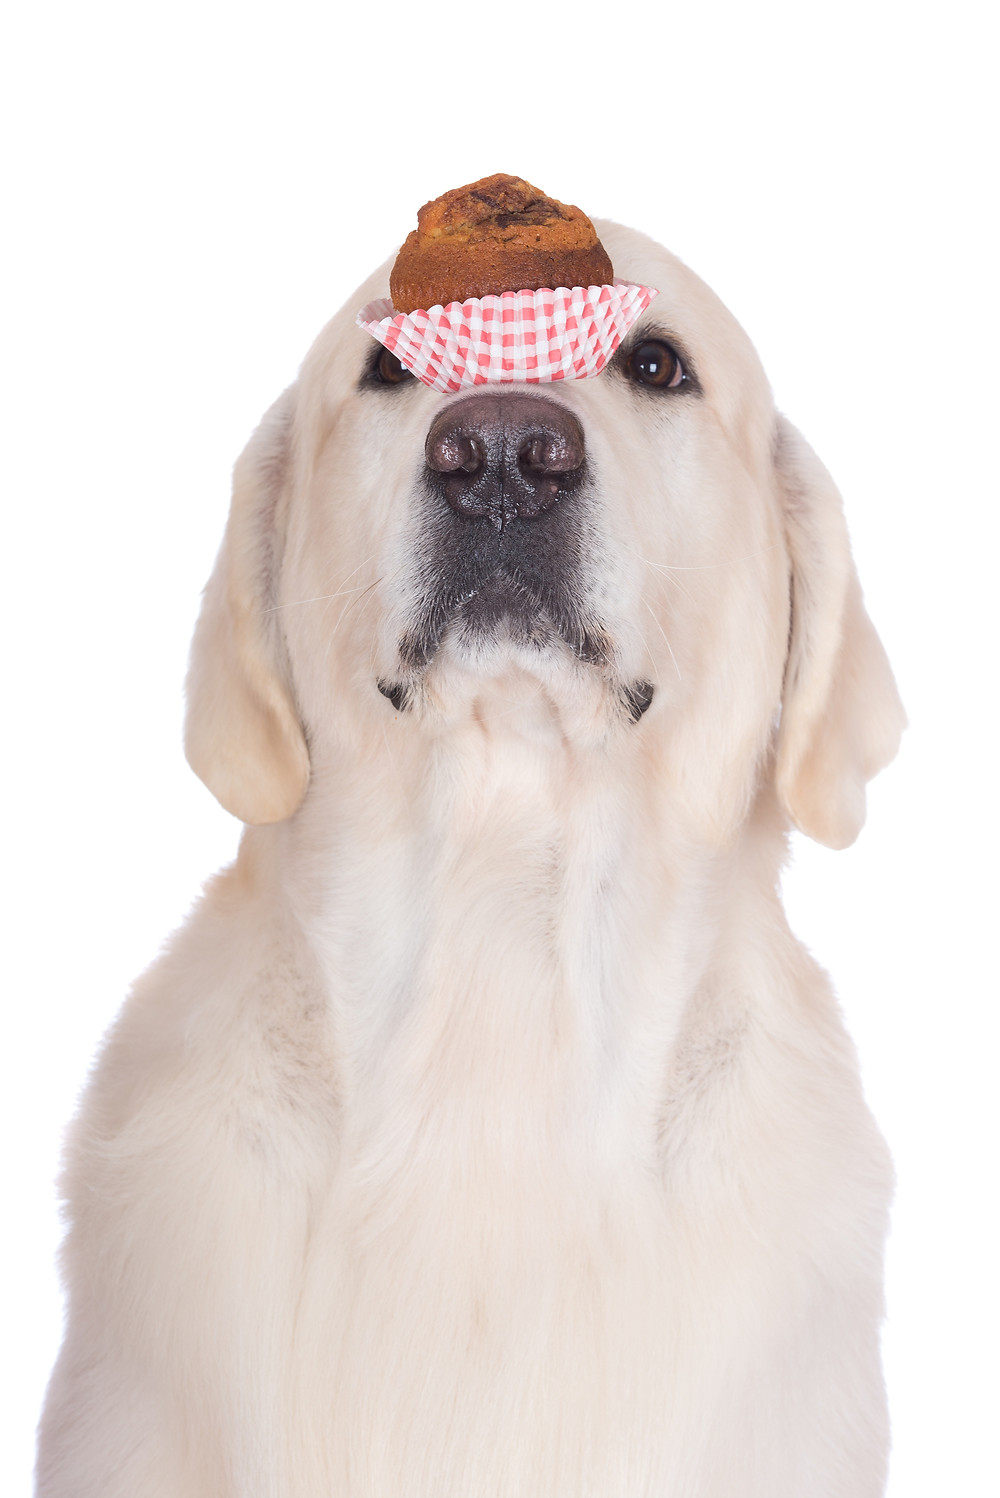 Dog Tricks are the Key to Getting Your Kids Involved in Training by Dorice Stancher, Bergen County Moms